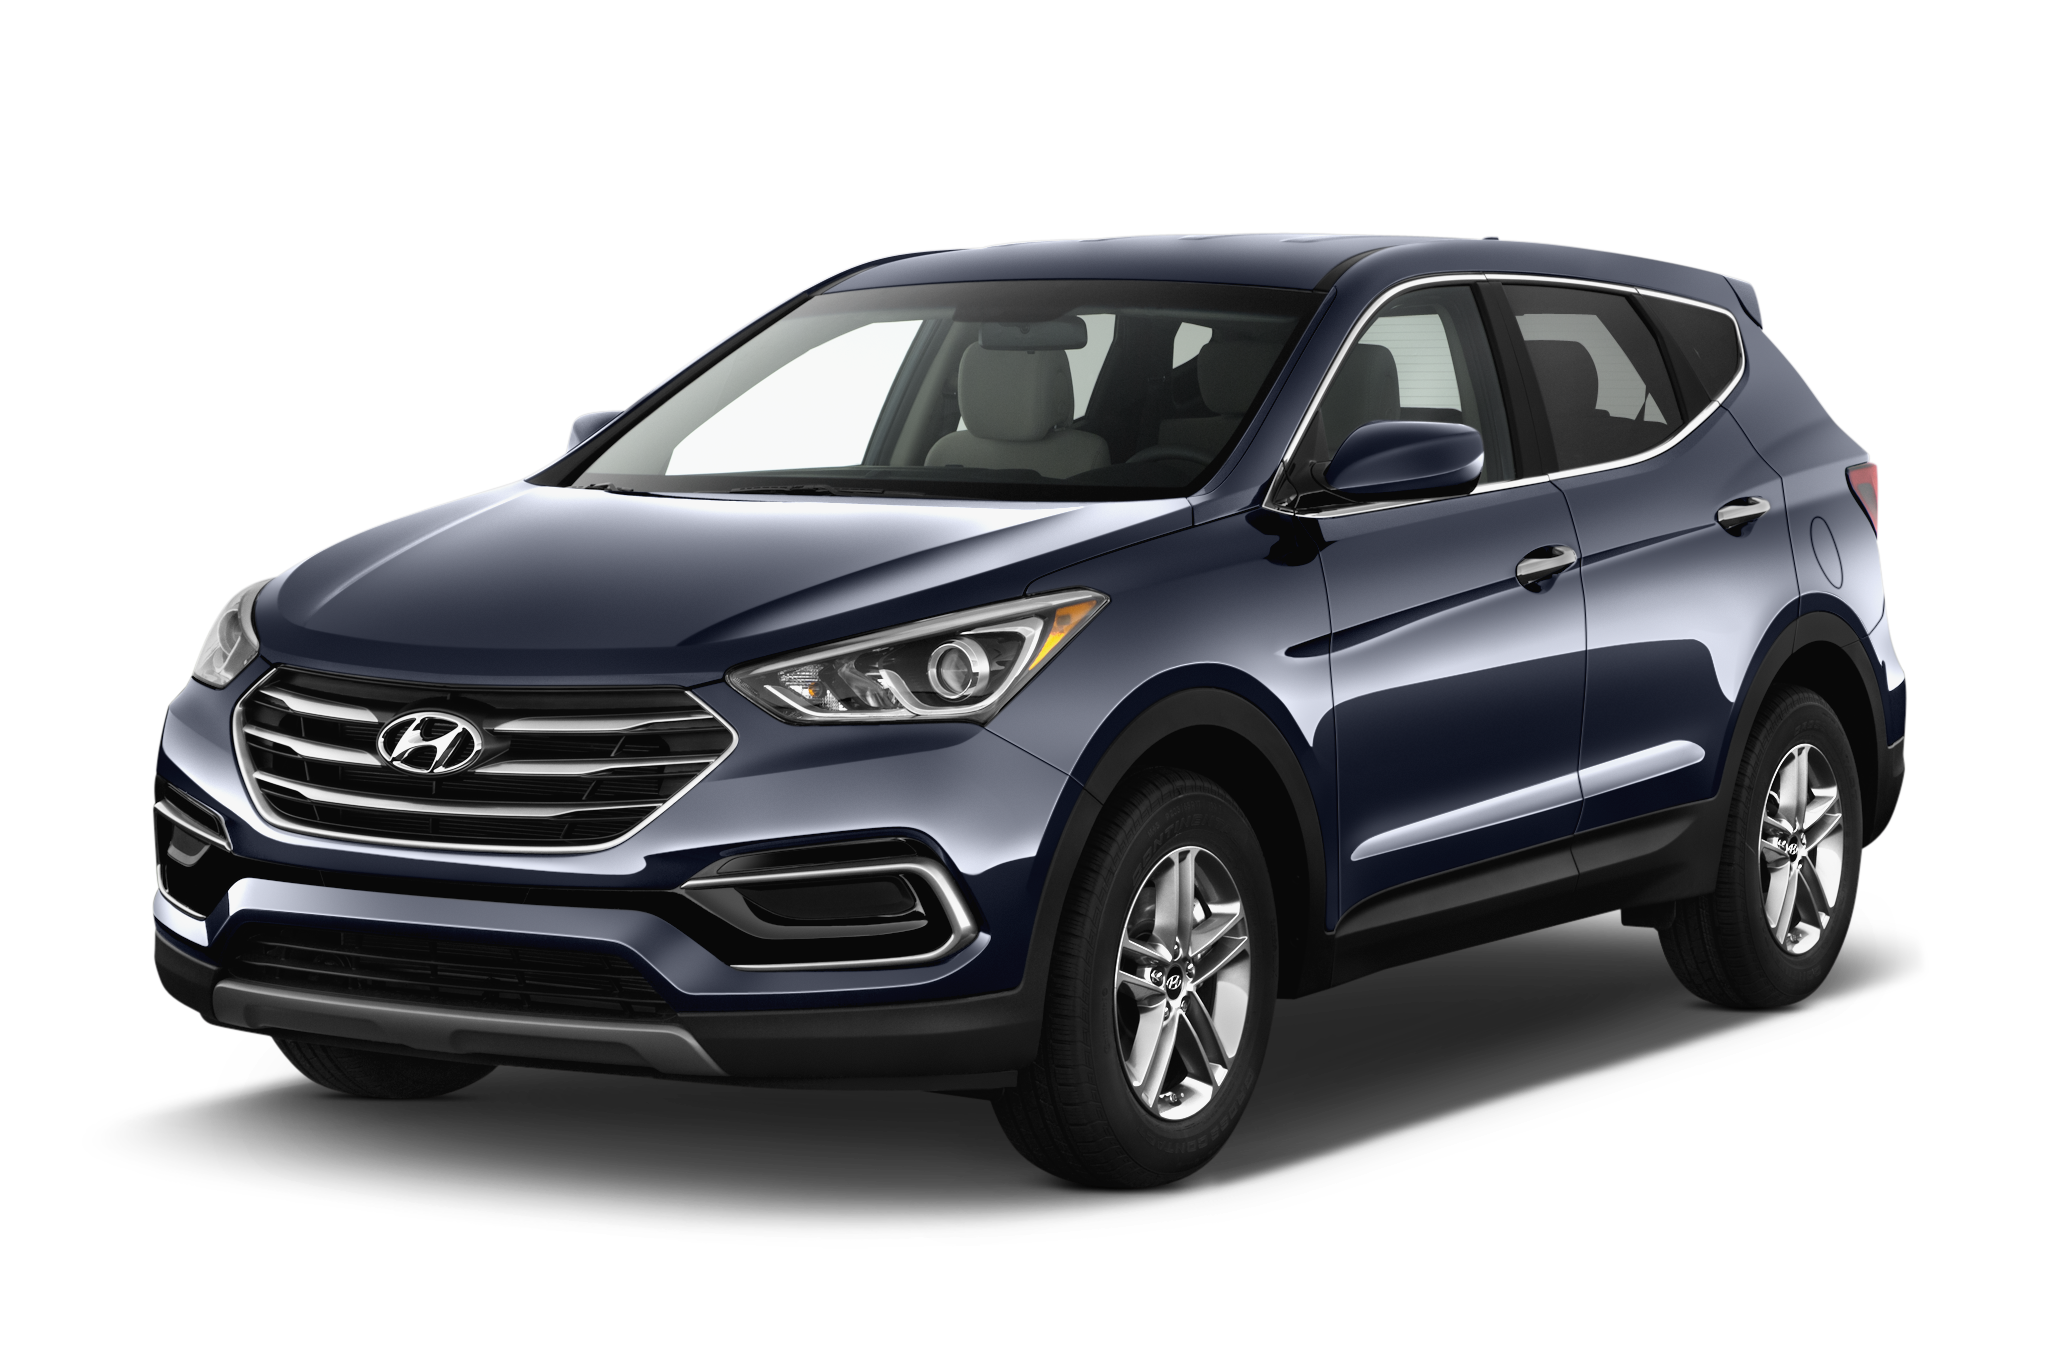 hyundai santa fe 2018 2 4l fwd in uae new car prices specs reviews photos yallamotor. Black Bedroom Furniture Sets. Home Design Ideas